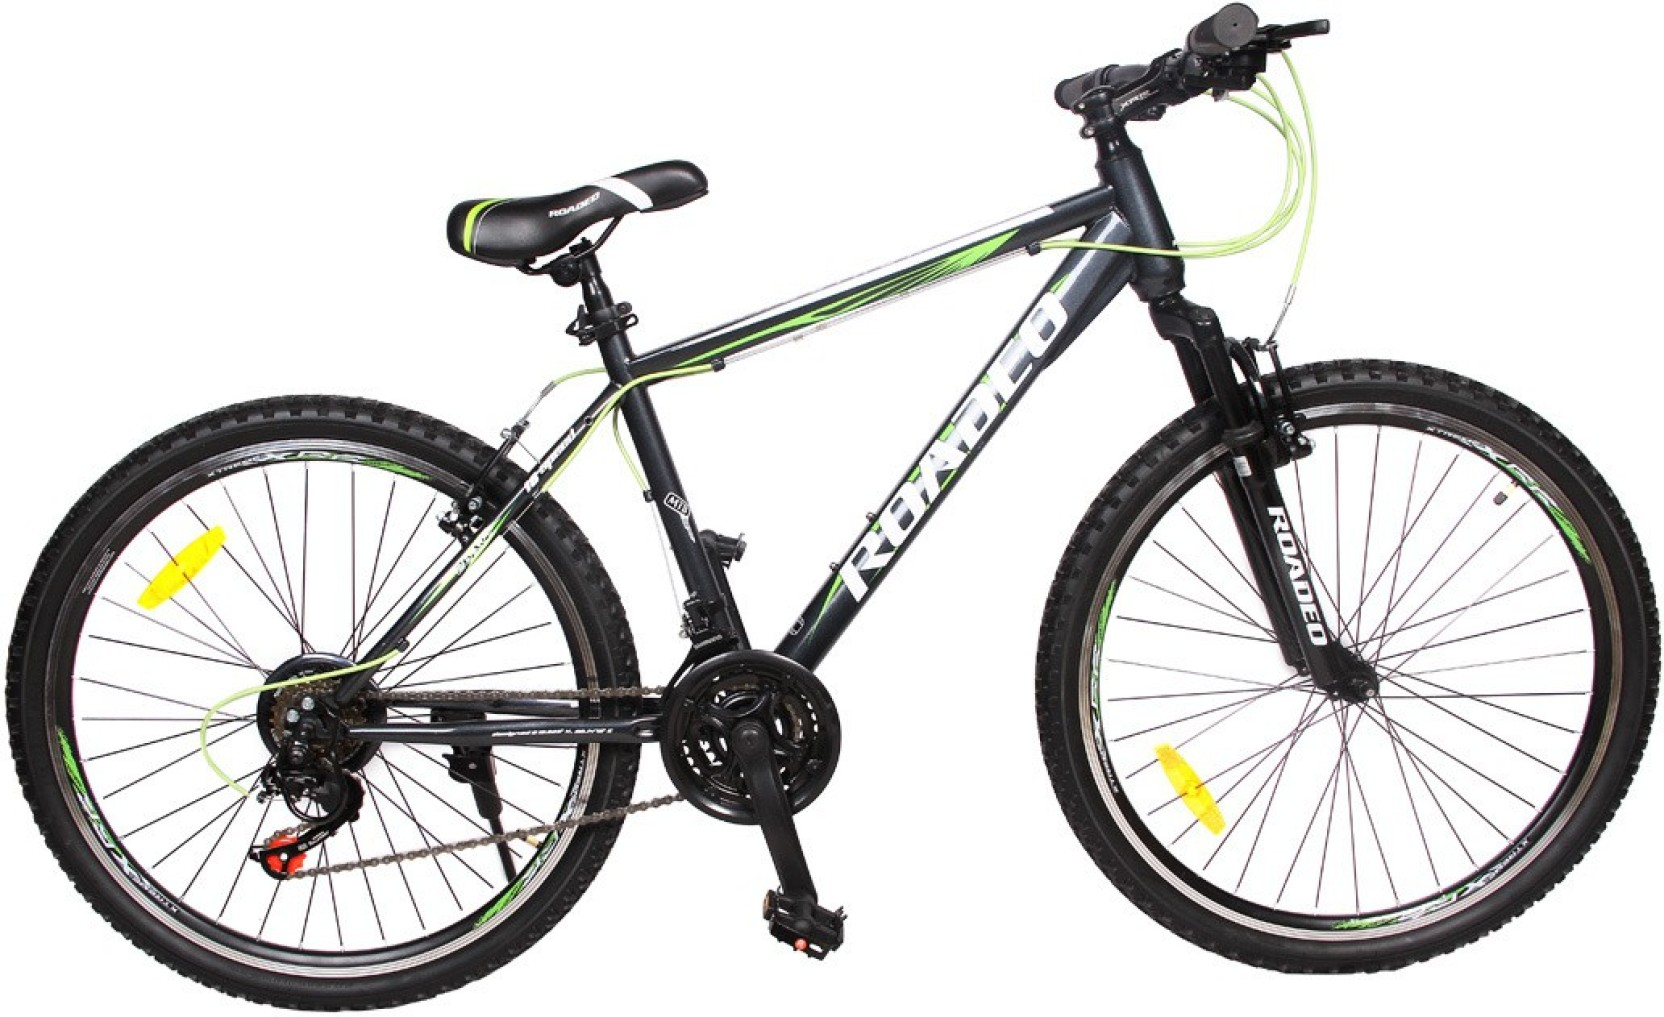 Bicycle Types How To Pick The Best Bike For You Pg9 further 66412 furthermore High End Road Bikes By Neilpryde And Bmw Designworksusa additionally 2017 Warrior Dash Florida additionally Michigan Kalkaska County. on off road seat